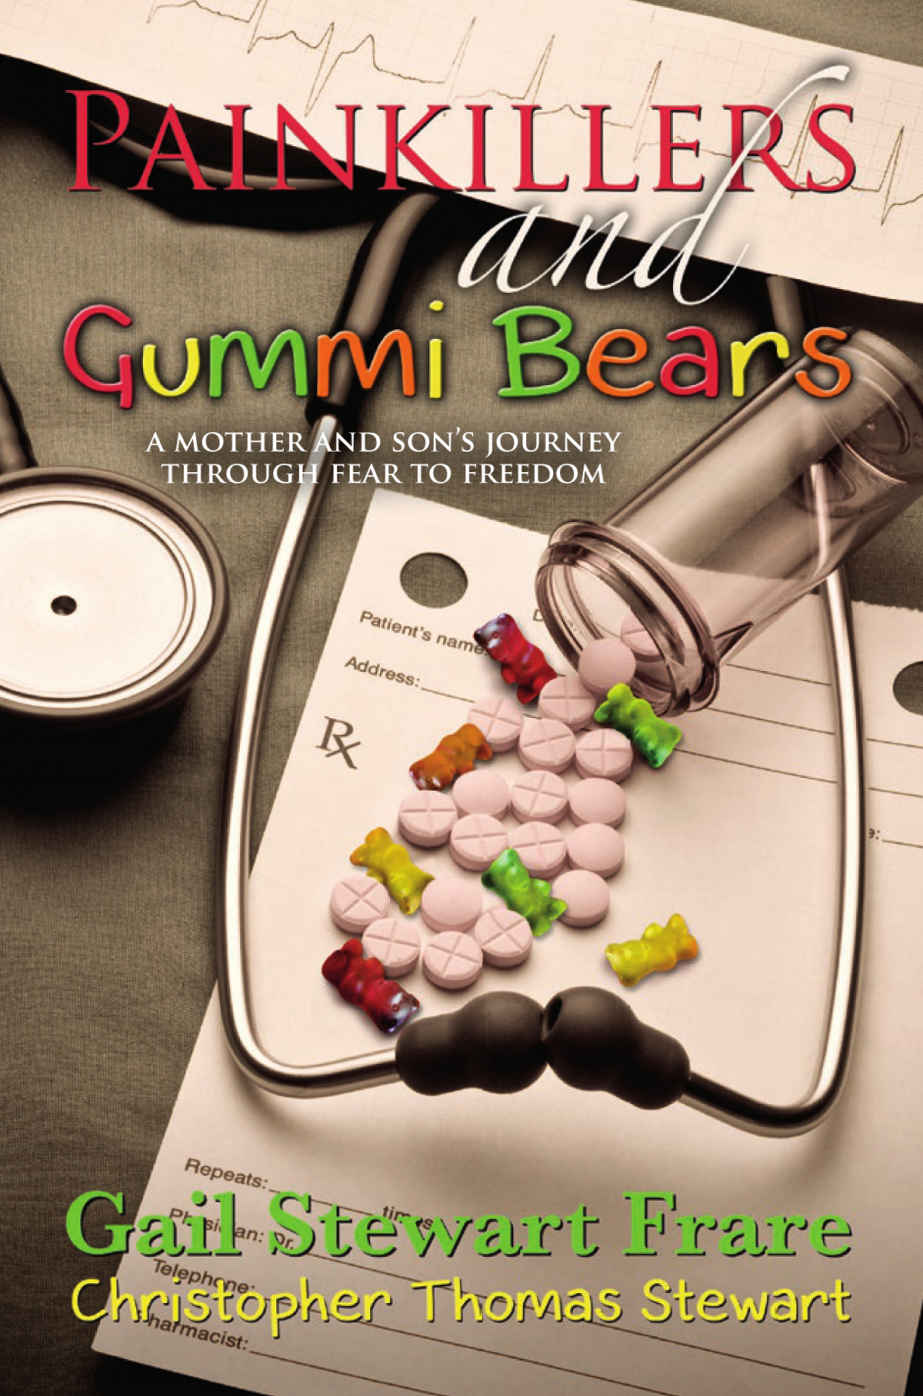 Image for Painkillers and Gummi Bears: A mother and son's journey through fear to freedom